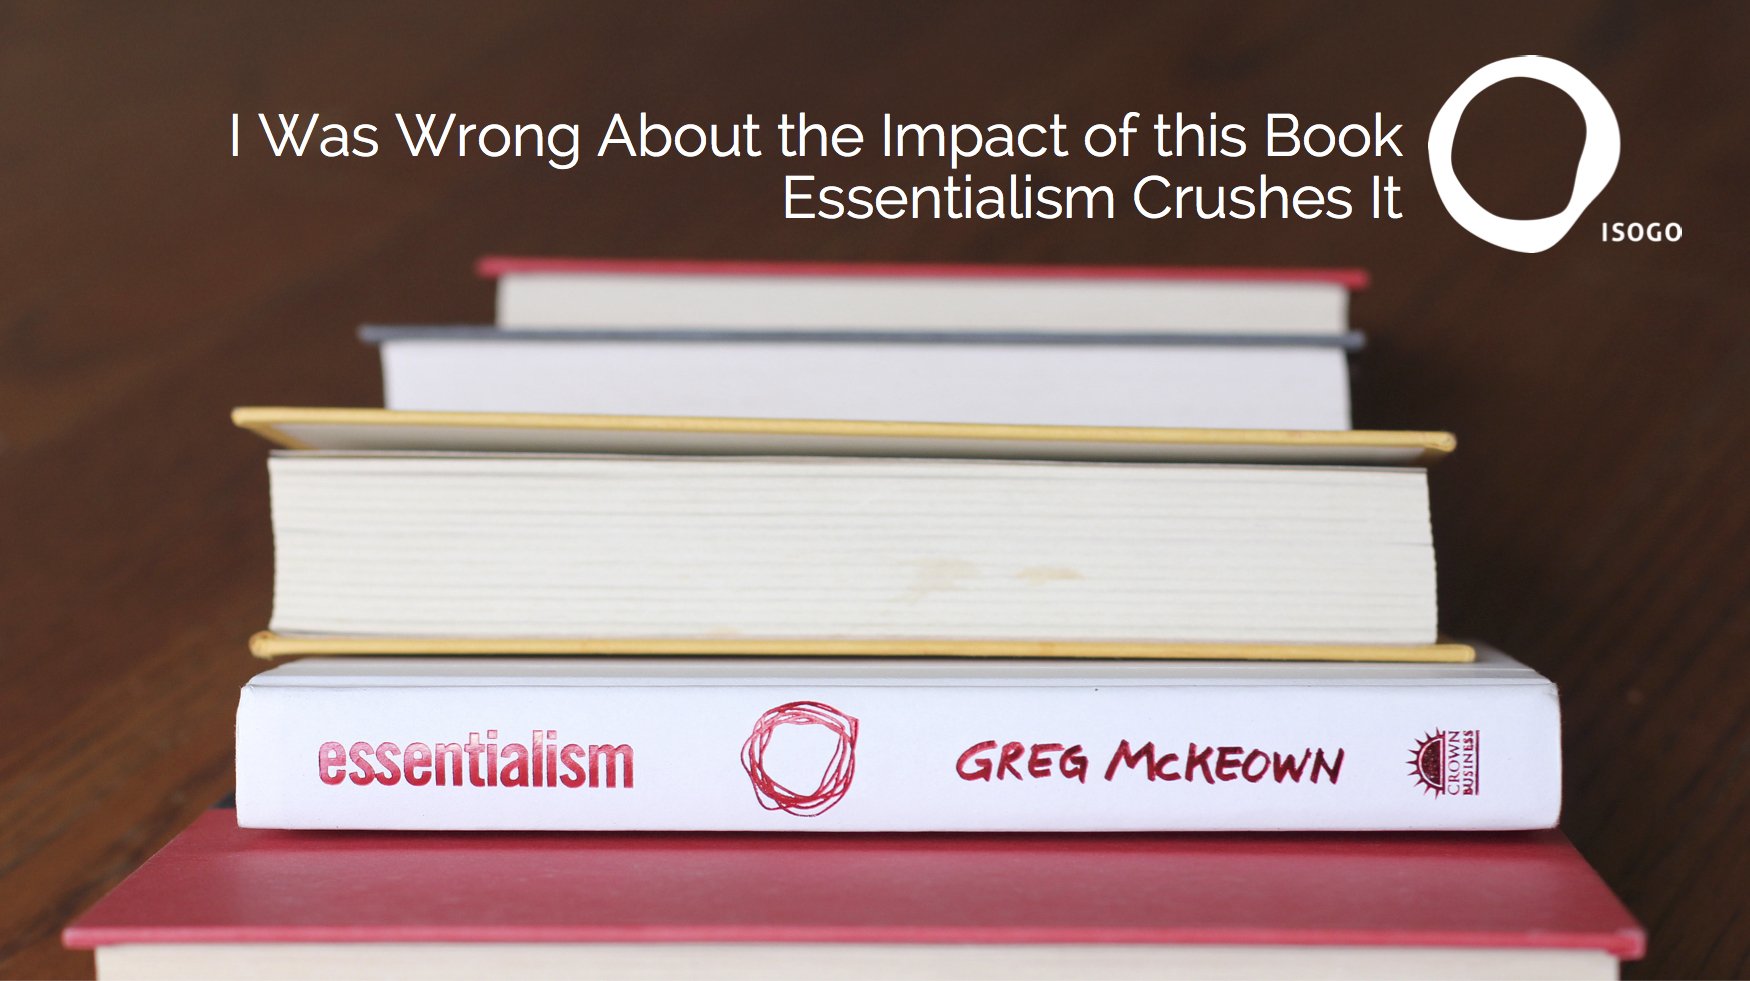 I Was Wrong About the Impact of this Book, Essentialism Crushes It